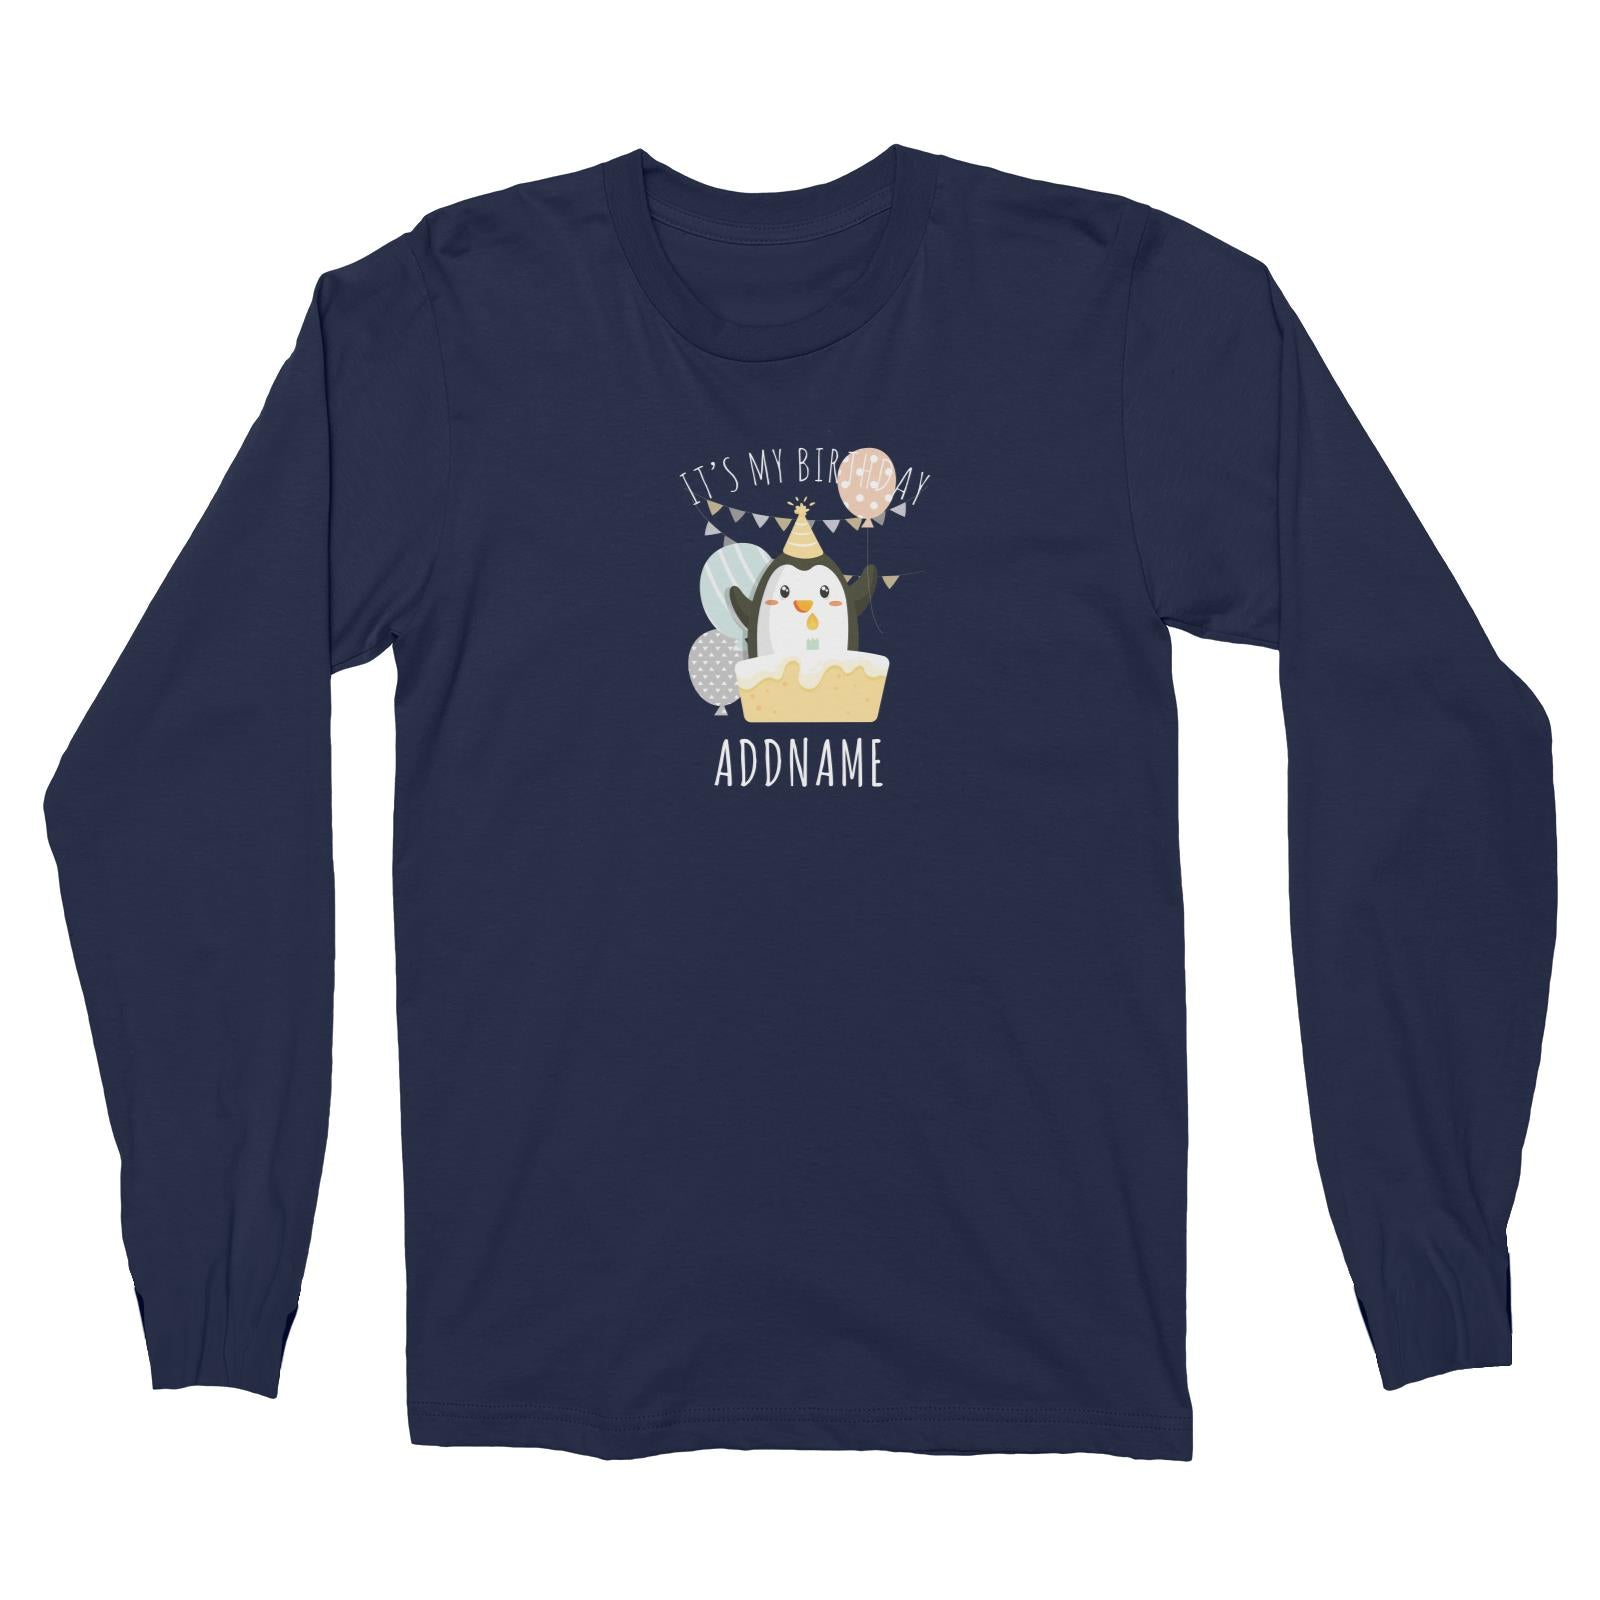 Birthday Cute Penguin And Cake It's My Birthday Addname Long Sleeve Unisex T-Shirt